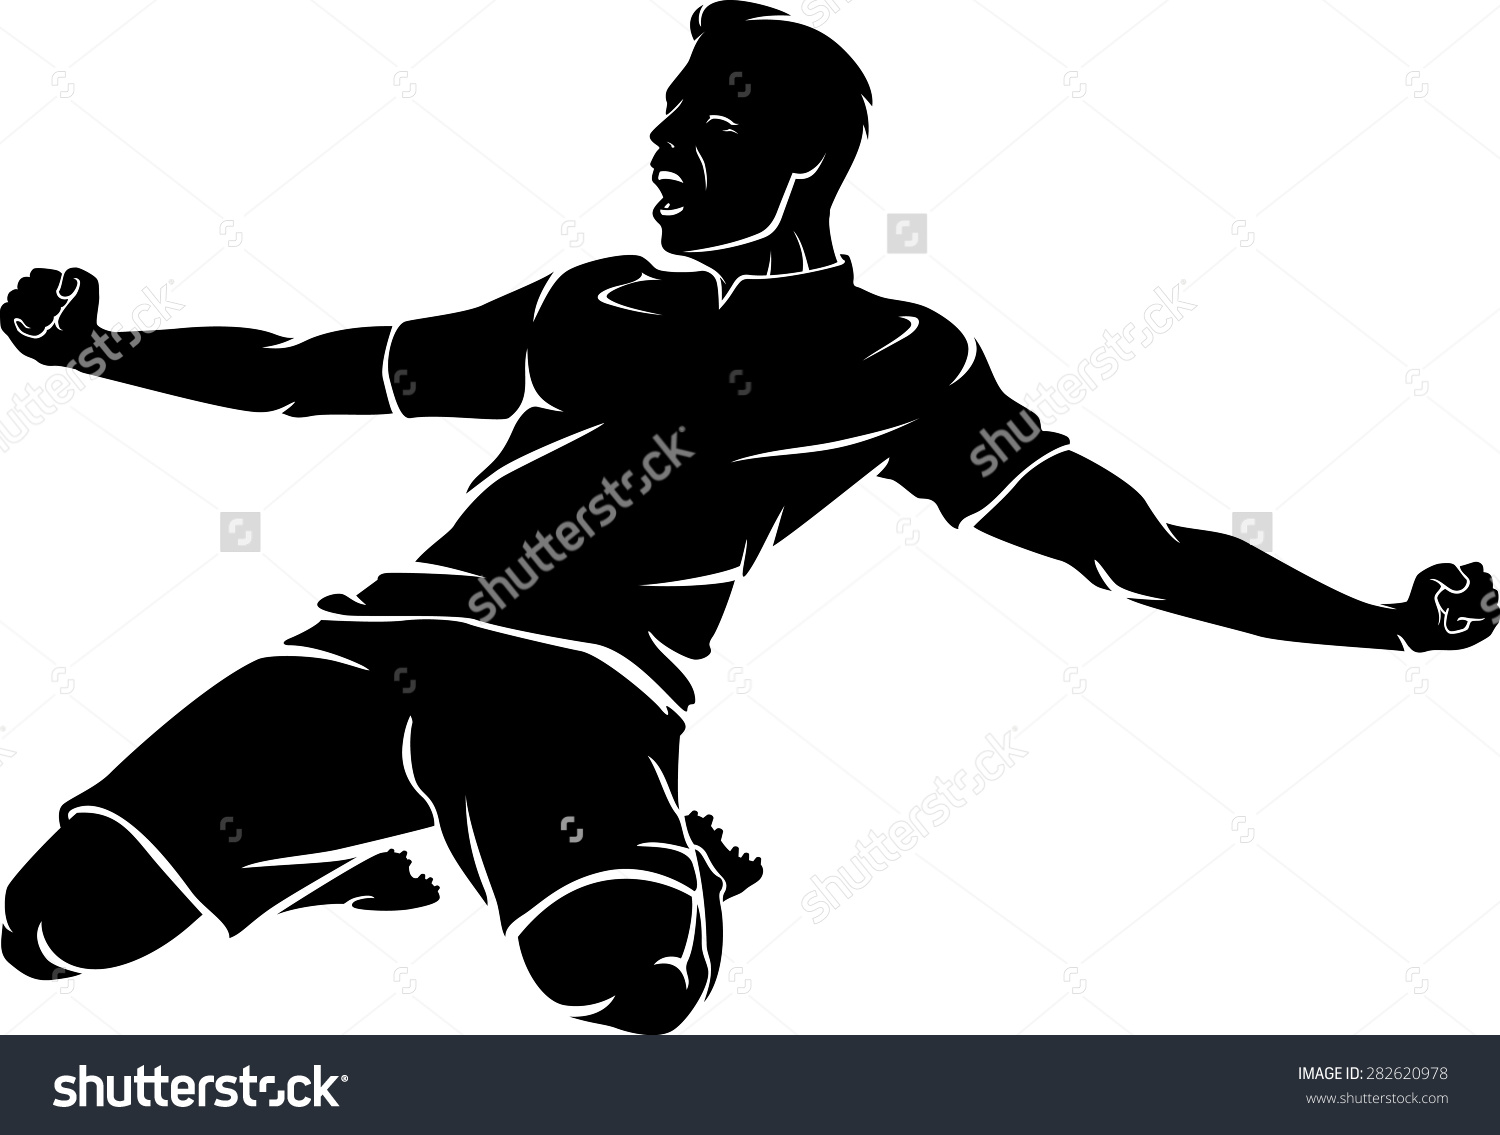 Soccer Kneeling Celebrate Winning Goal Stock Vector 282620978.